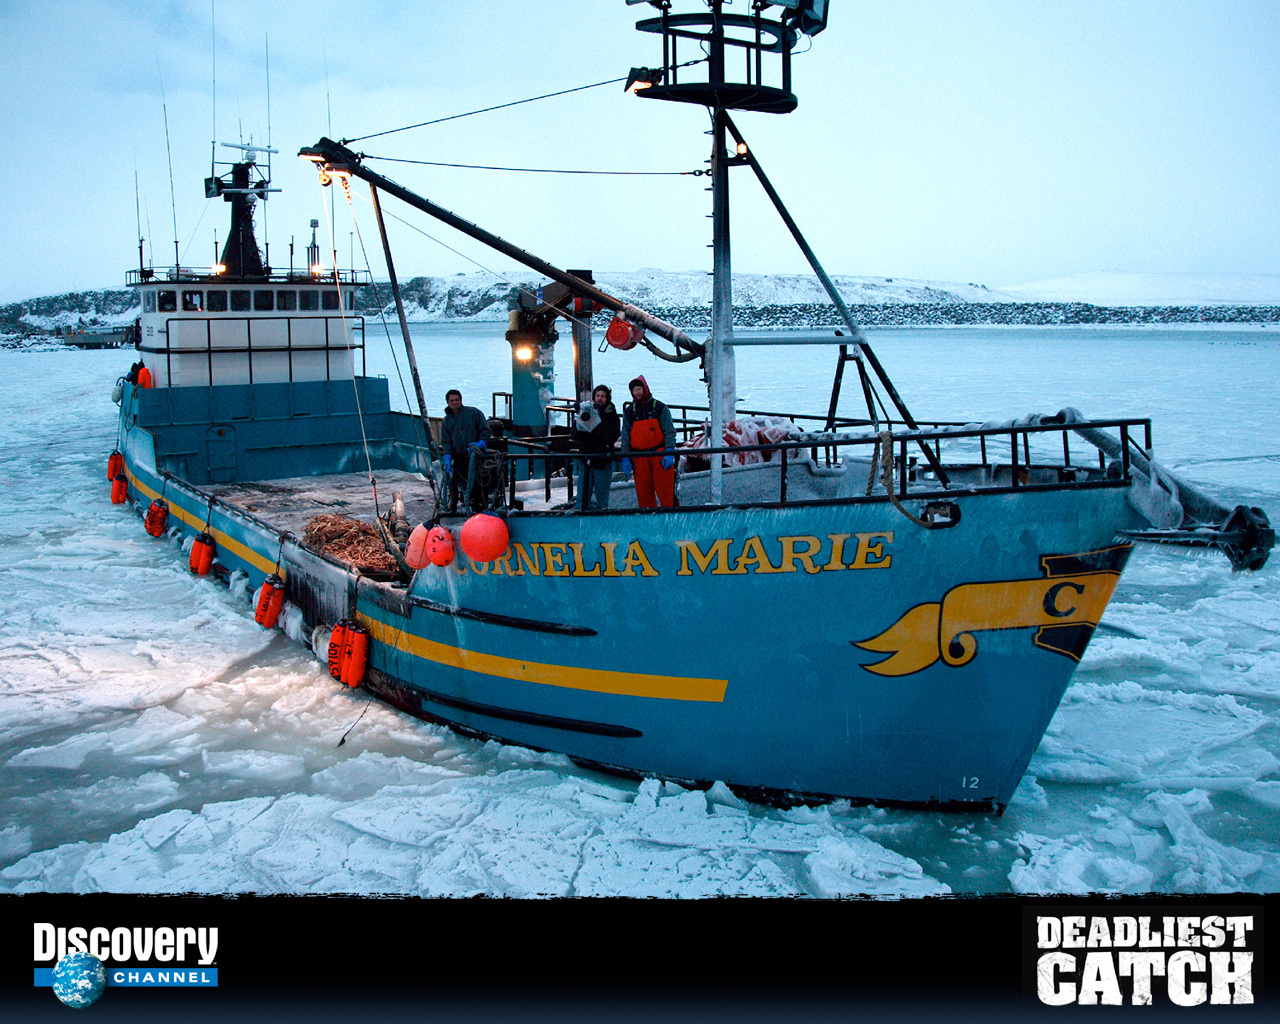 Deadliest Catch Cornelia Marie